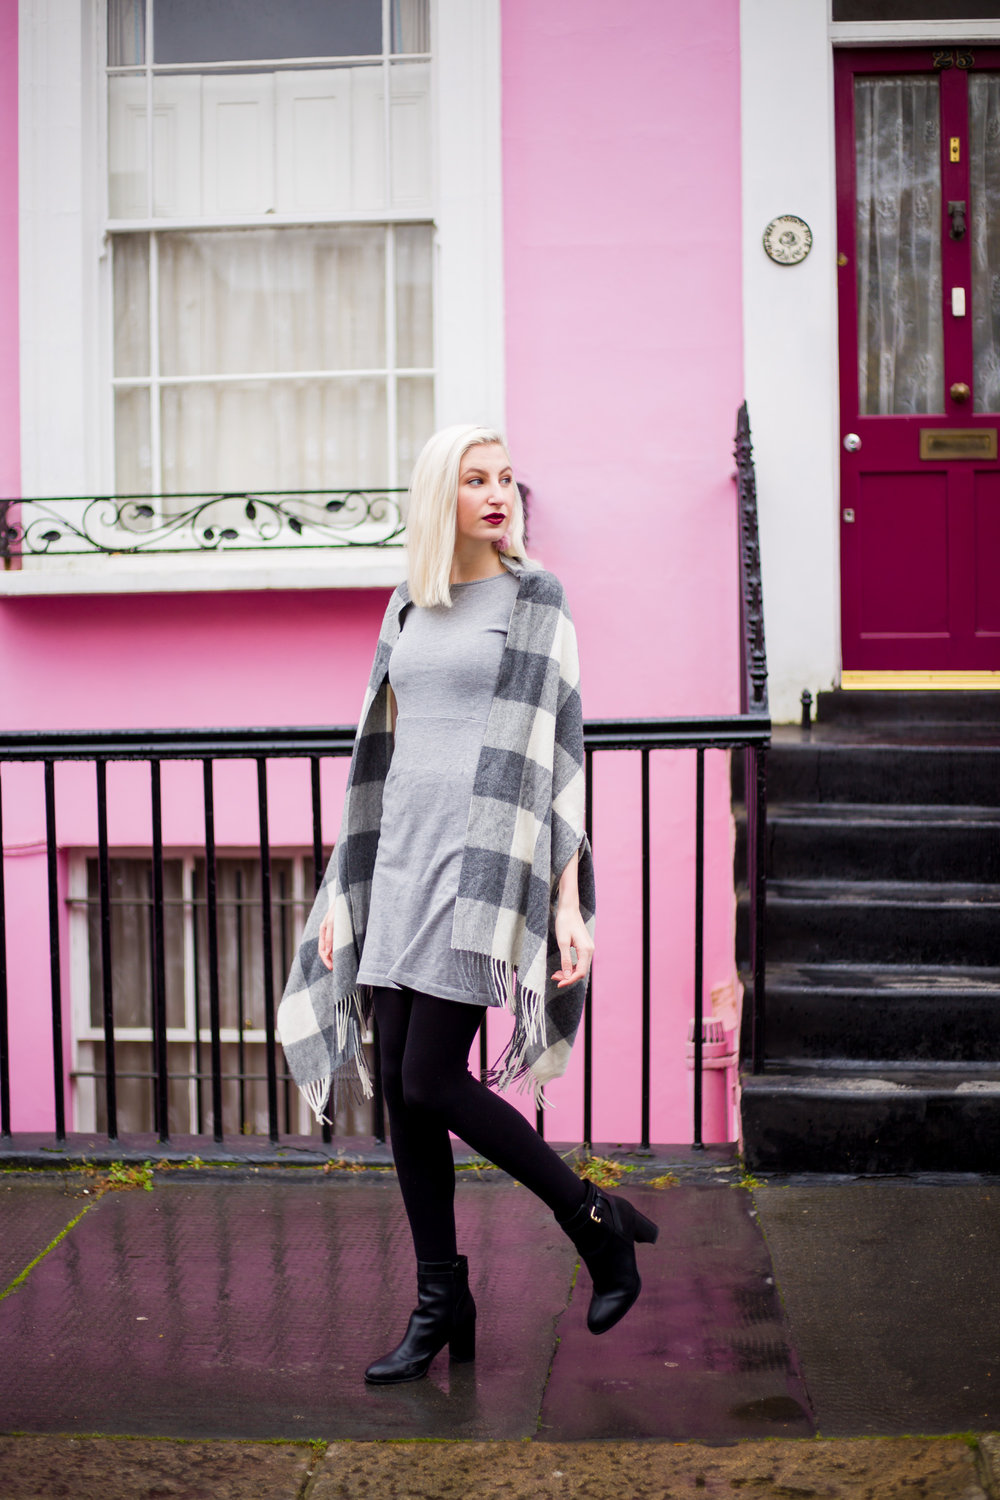 J.Crew simple everyday dress, checkered cape scarf, furry pink pom pom earrings, notting hill london UK